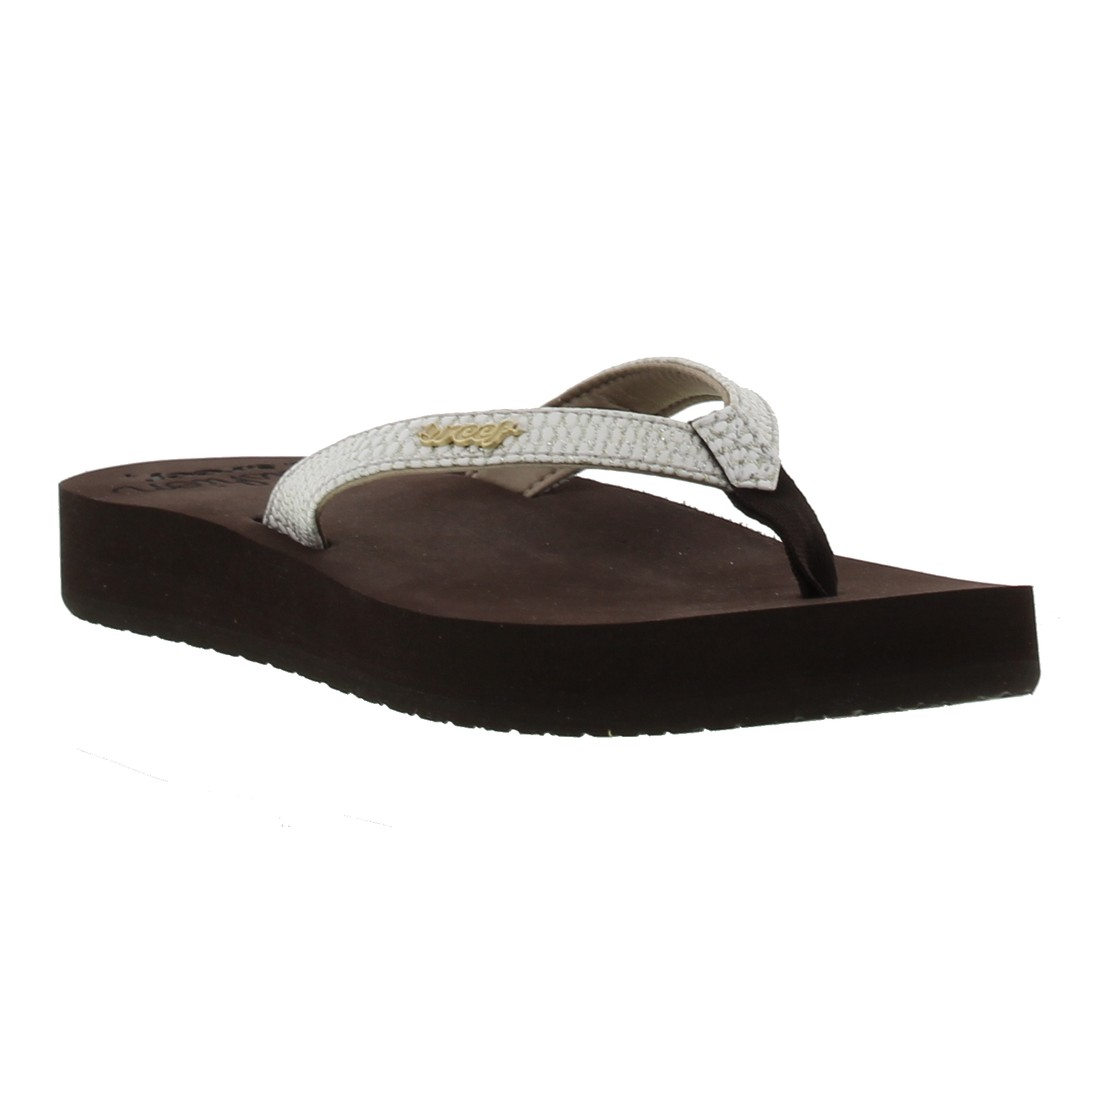 New Womens Reef Fanning Lux Brown Coral Toe Post Sandals Flip Flops Shu Size | EBay